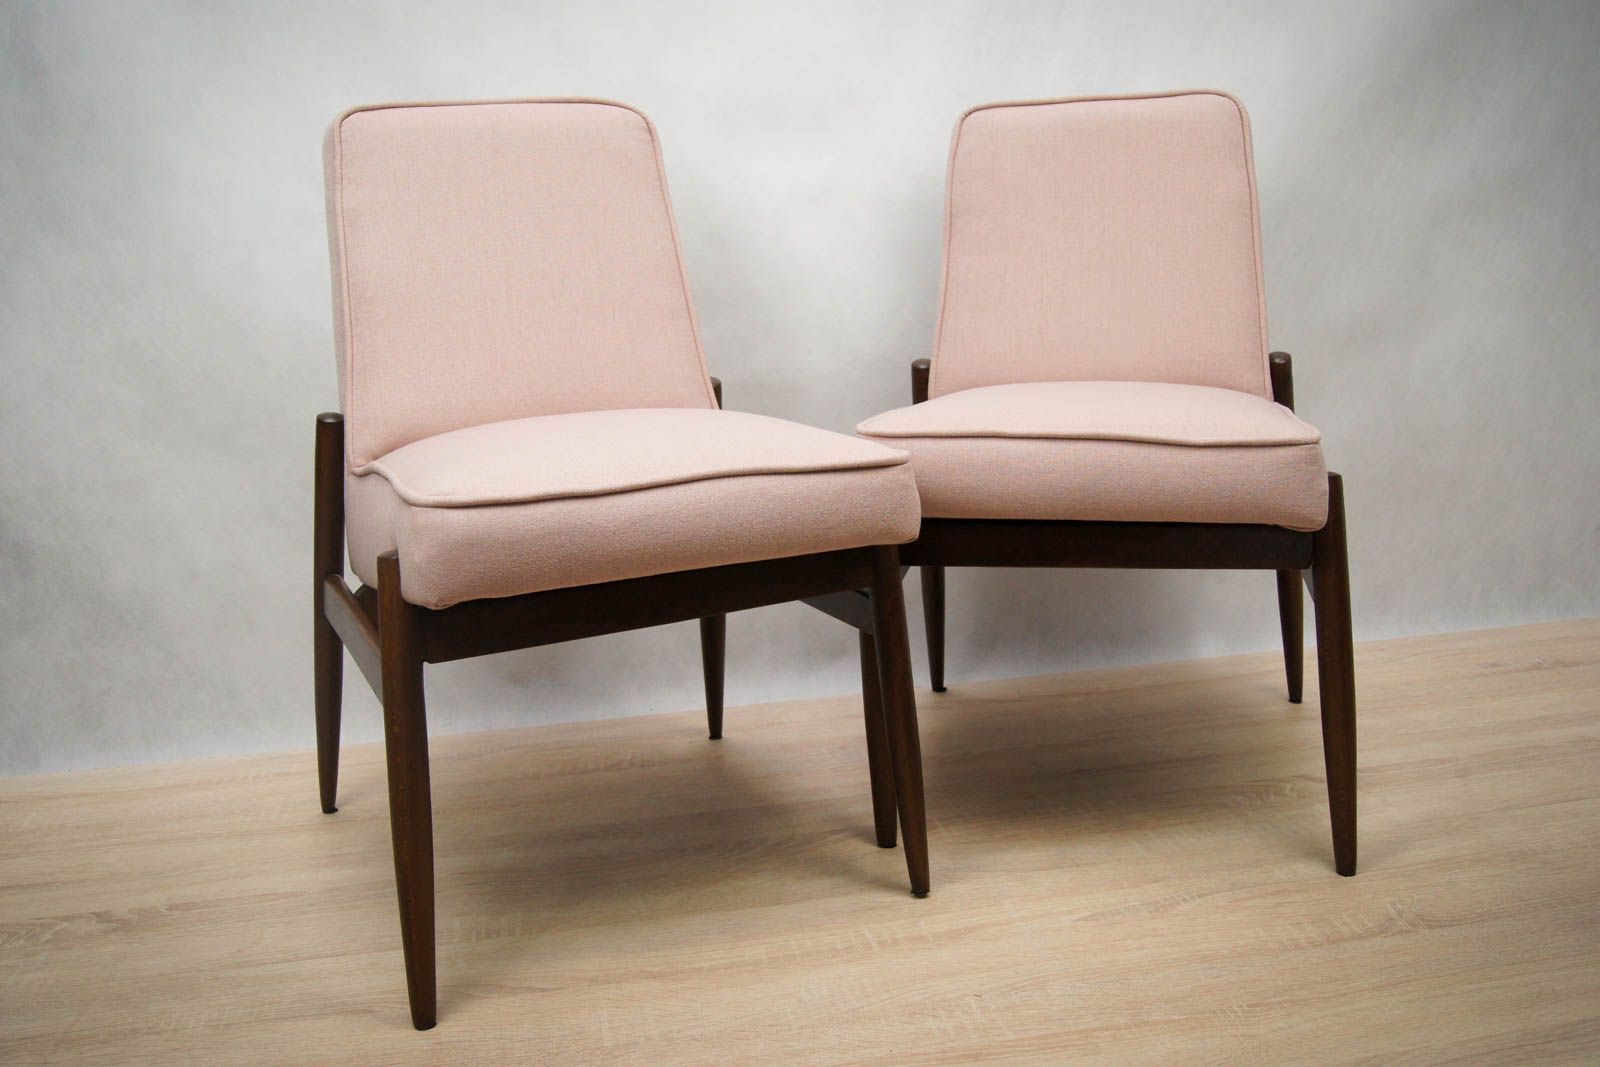 Chairs From Zamo Furniture Factory 1960s Set Of 2 For Sale At Pamono